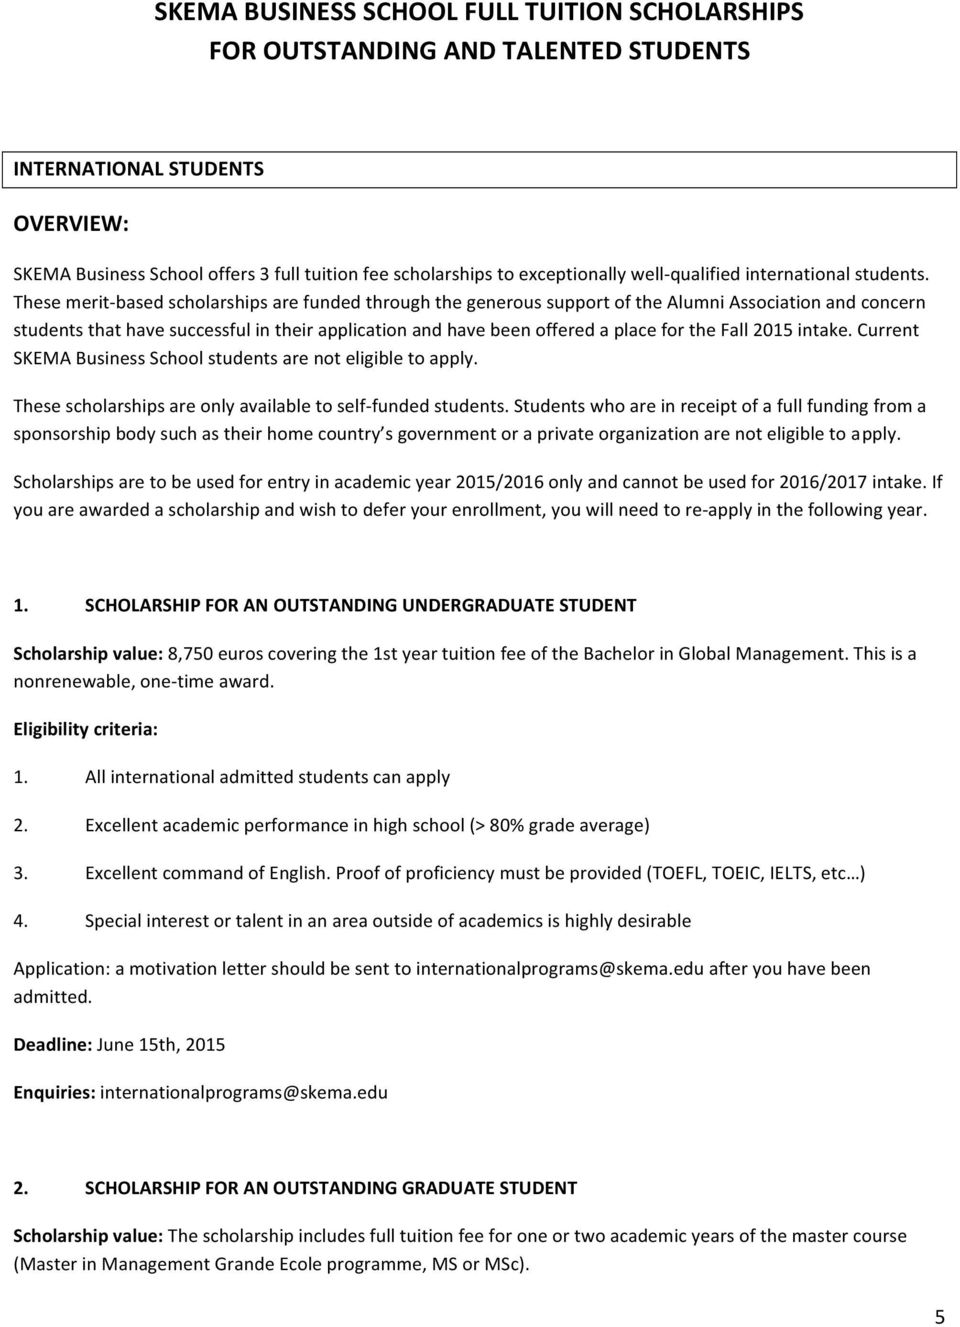 Business letter essay business letter application for a scholarship business letter application for a scholarship letter of recommendation for scholarship from employer professional paper format altavistaventures Choice Image